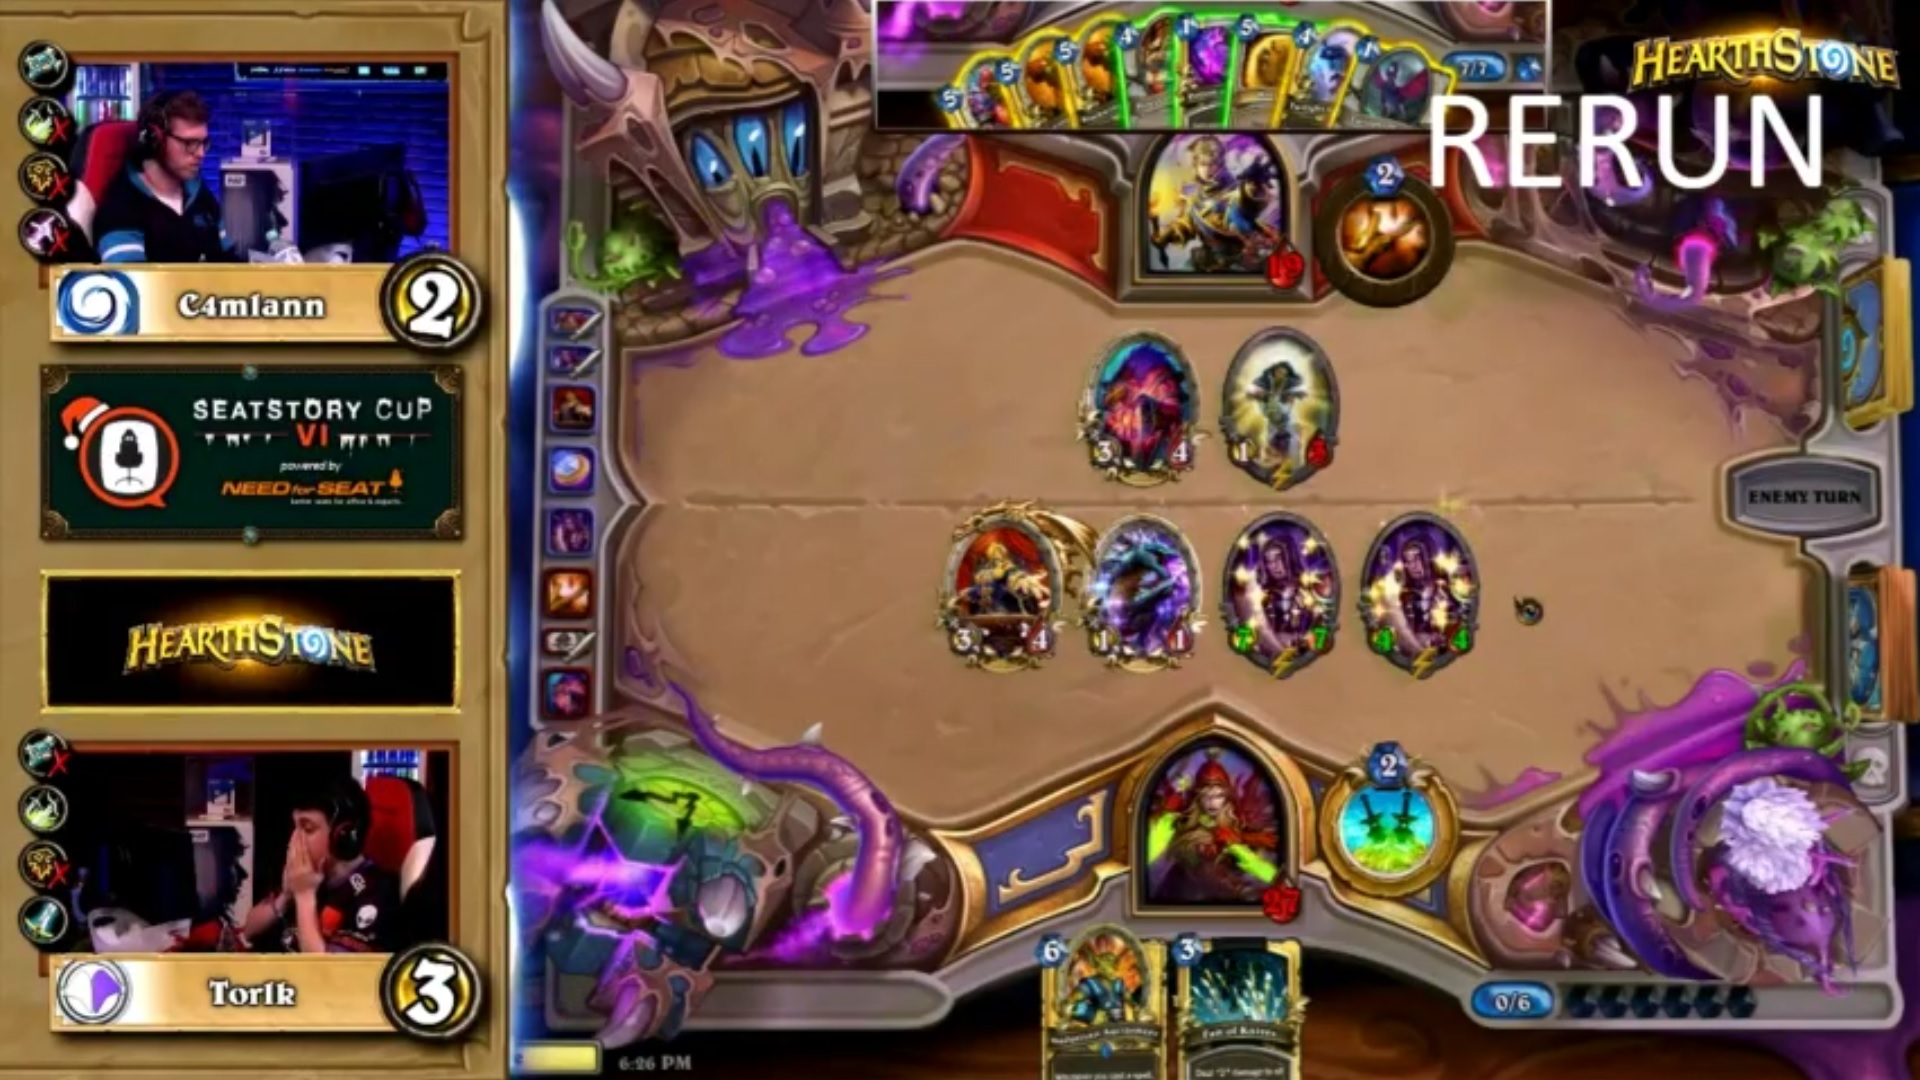 An example of a Hearthstone misplay at Seatstory Cup VI. This game is between C4mlann and Torik.